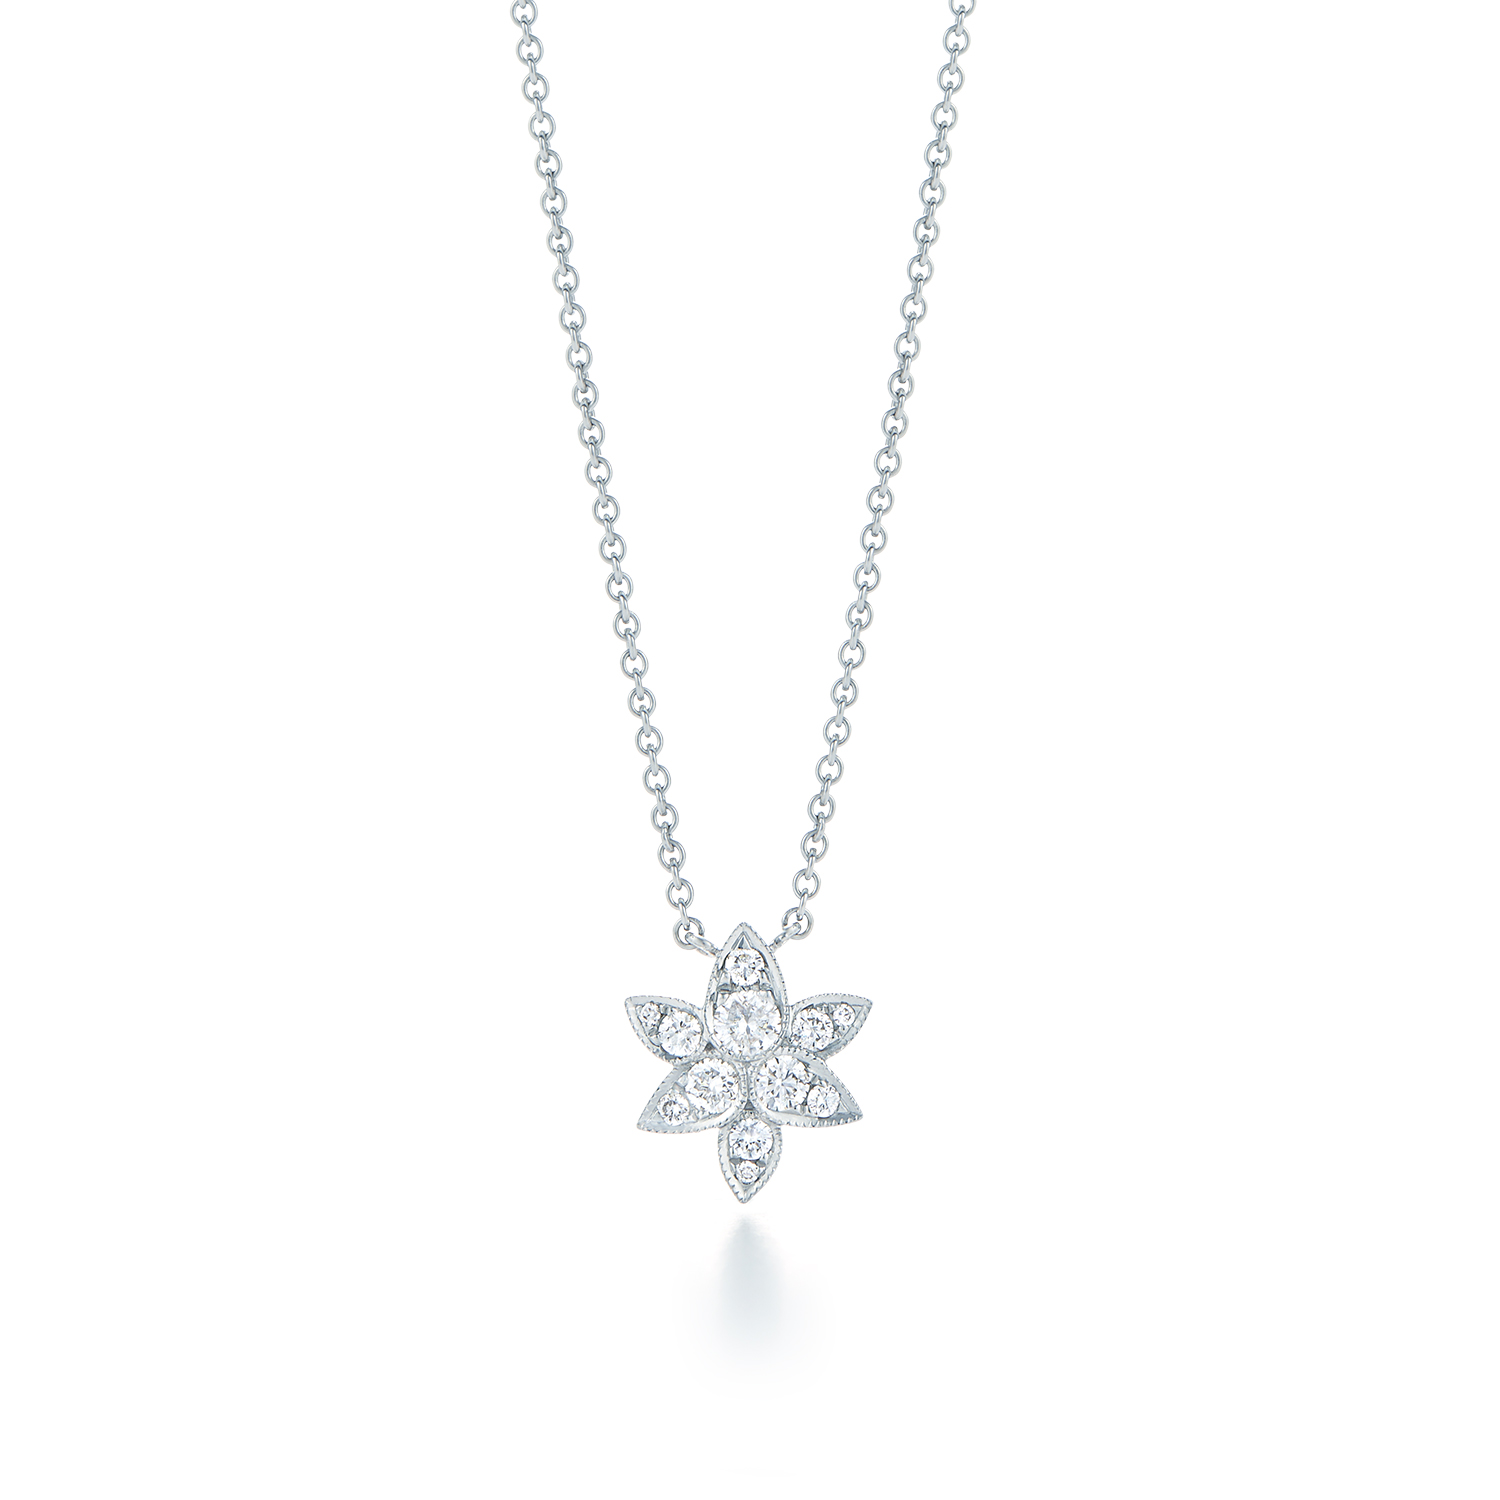 Diamond pendant in 18k white kwiat sunburst pendant style 9481 kwiat sunburst pendant aloadofball Images